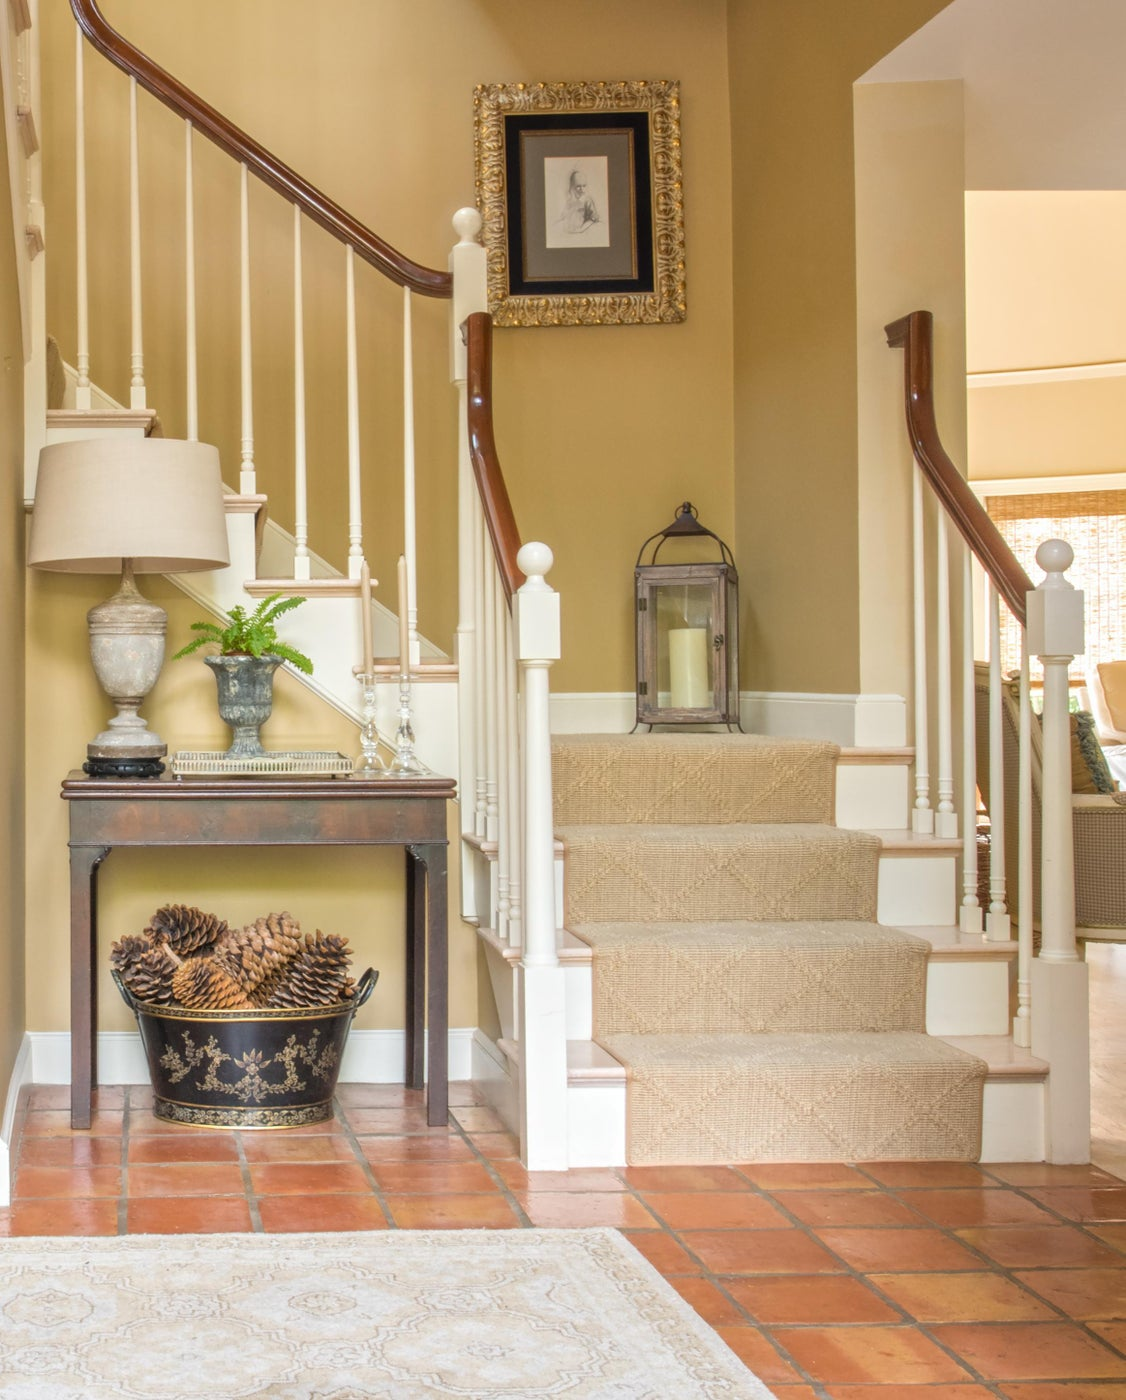 Entry into the Transitional Family Home